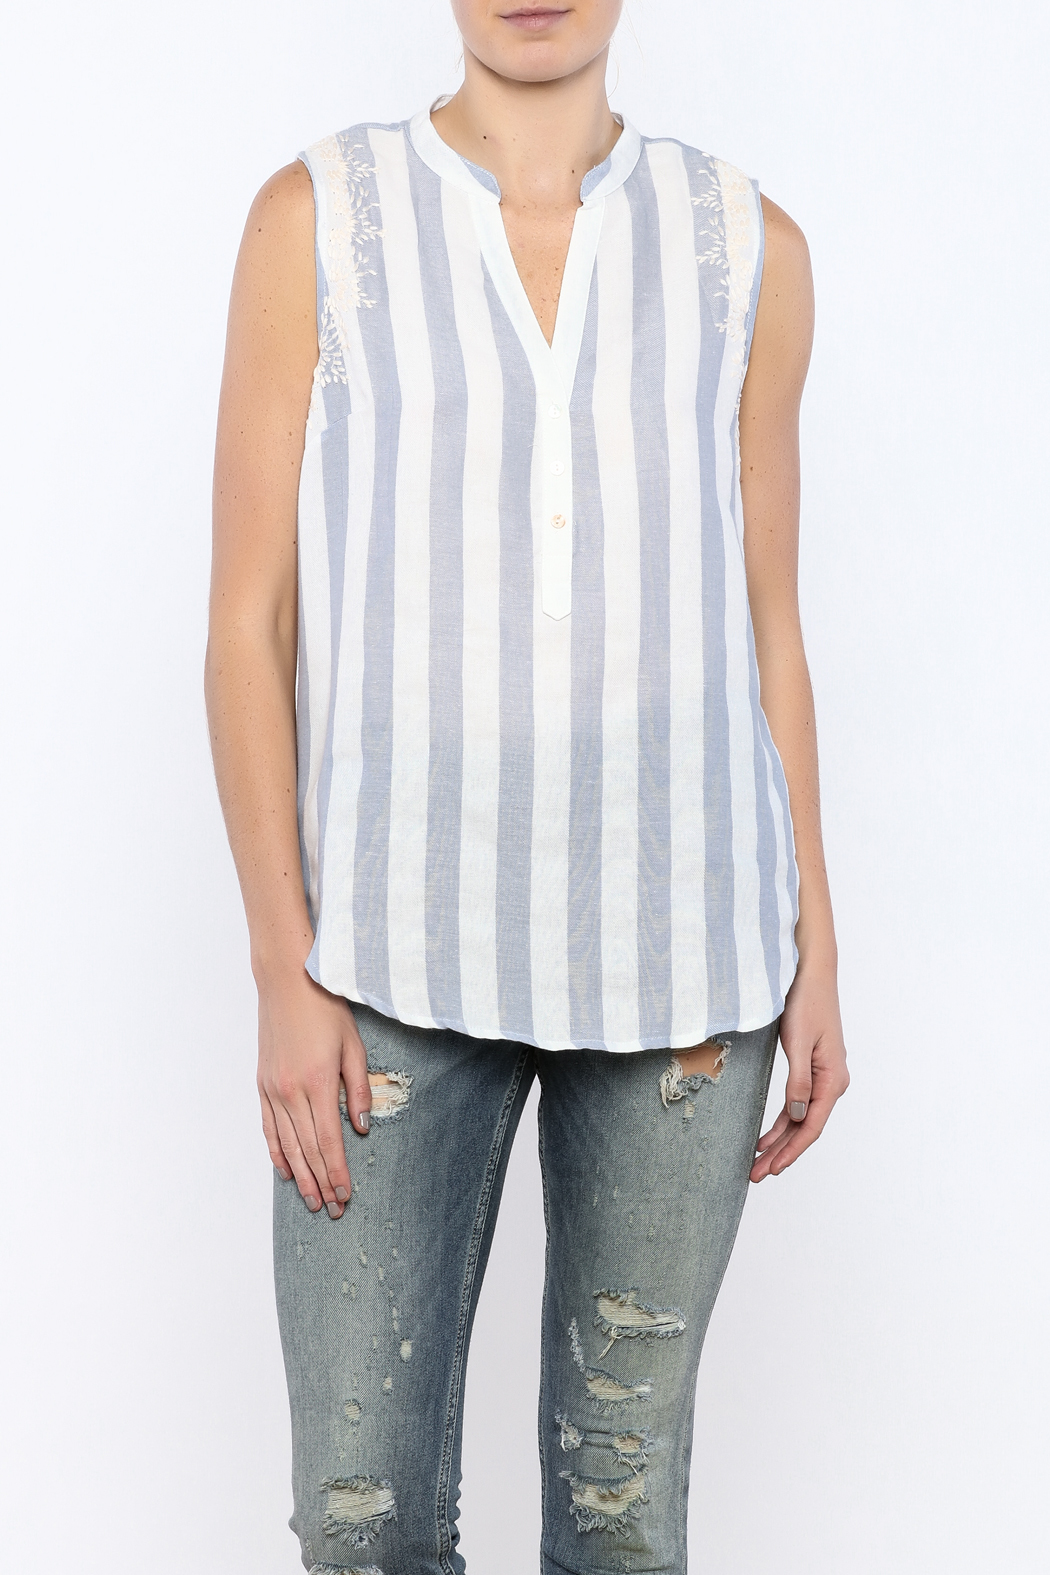 Bacio Stripe Sleeveless Top - Front Cropped Image